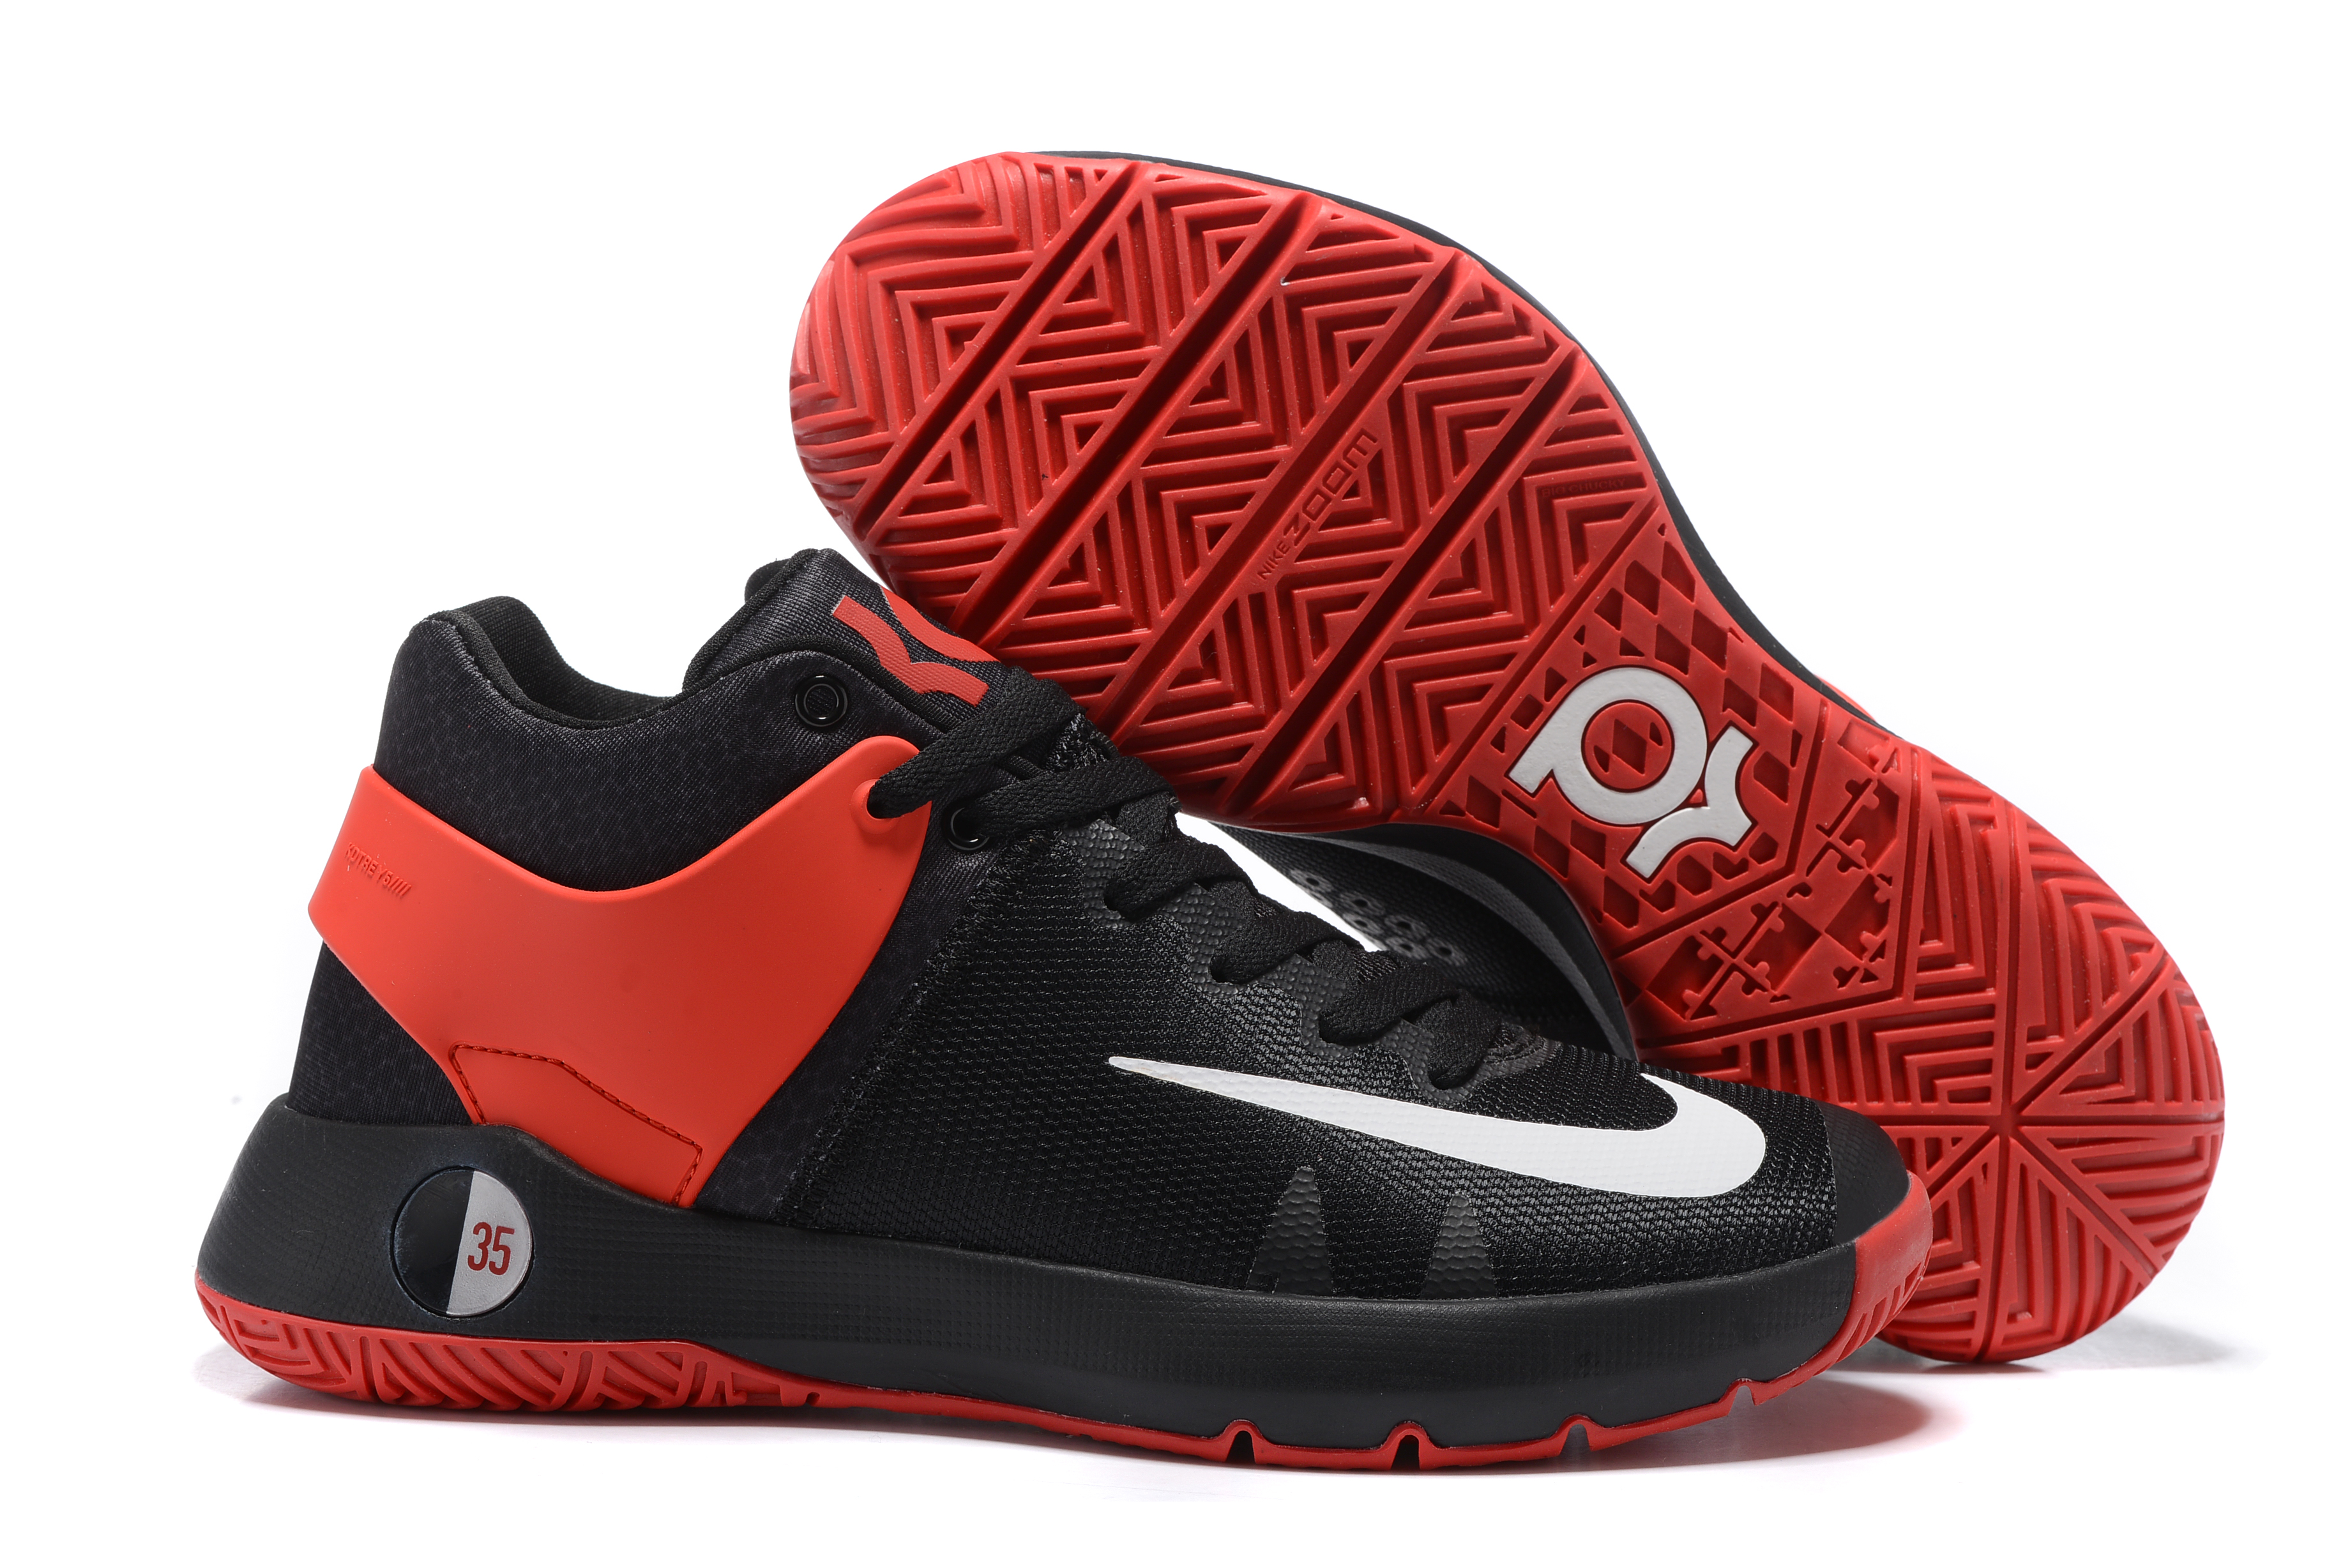 Nike KD Trey 5 IV Black White Red Basketball Shoes